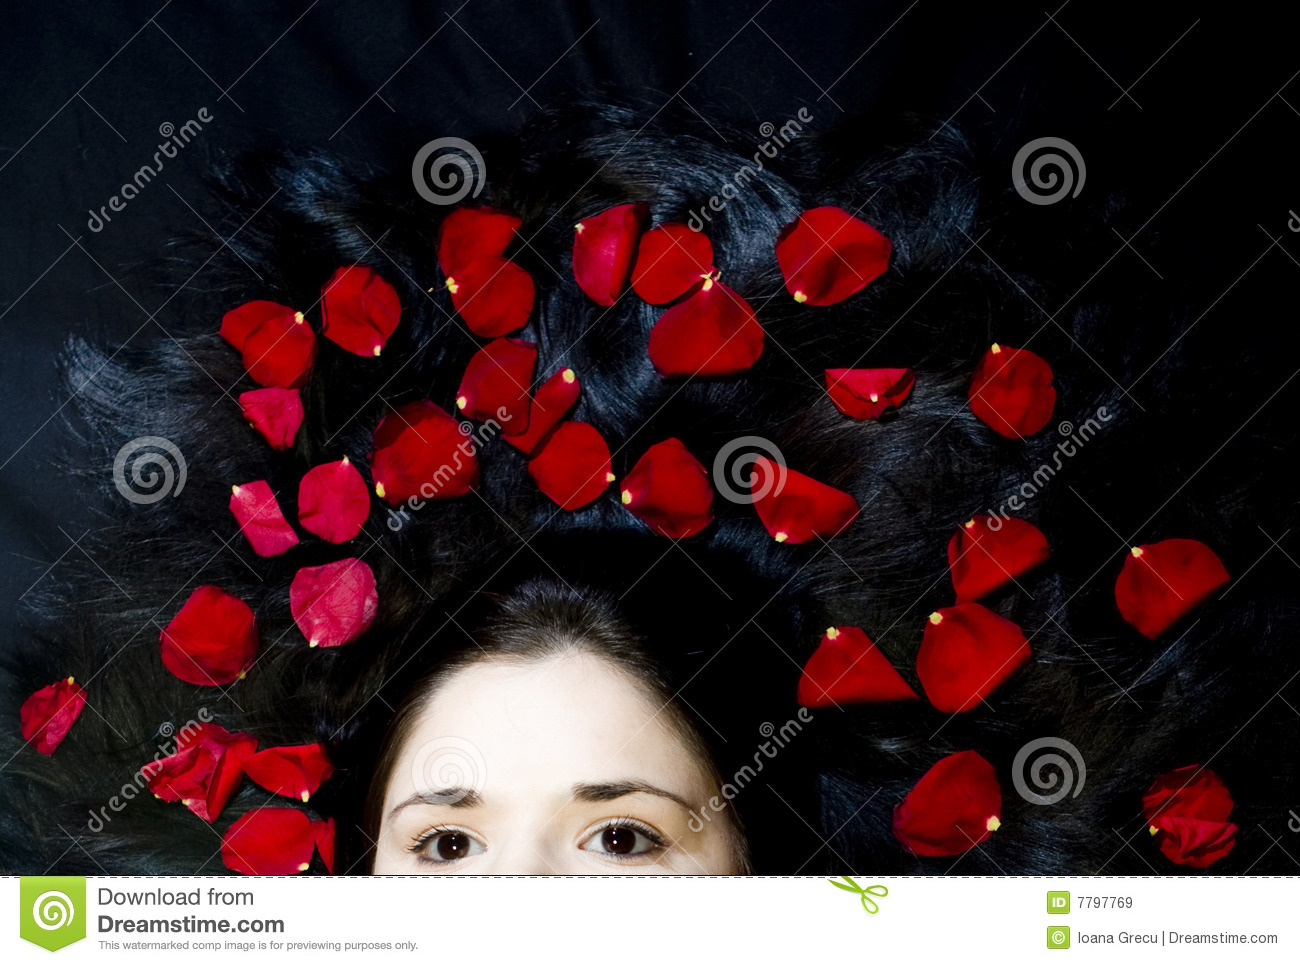 Hair with rose petals